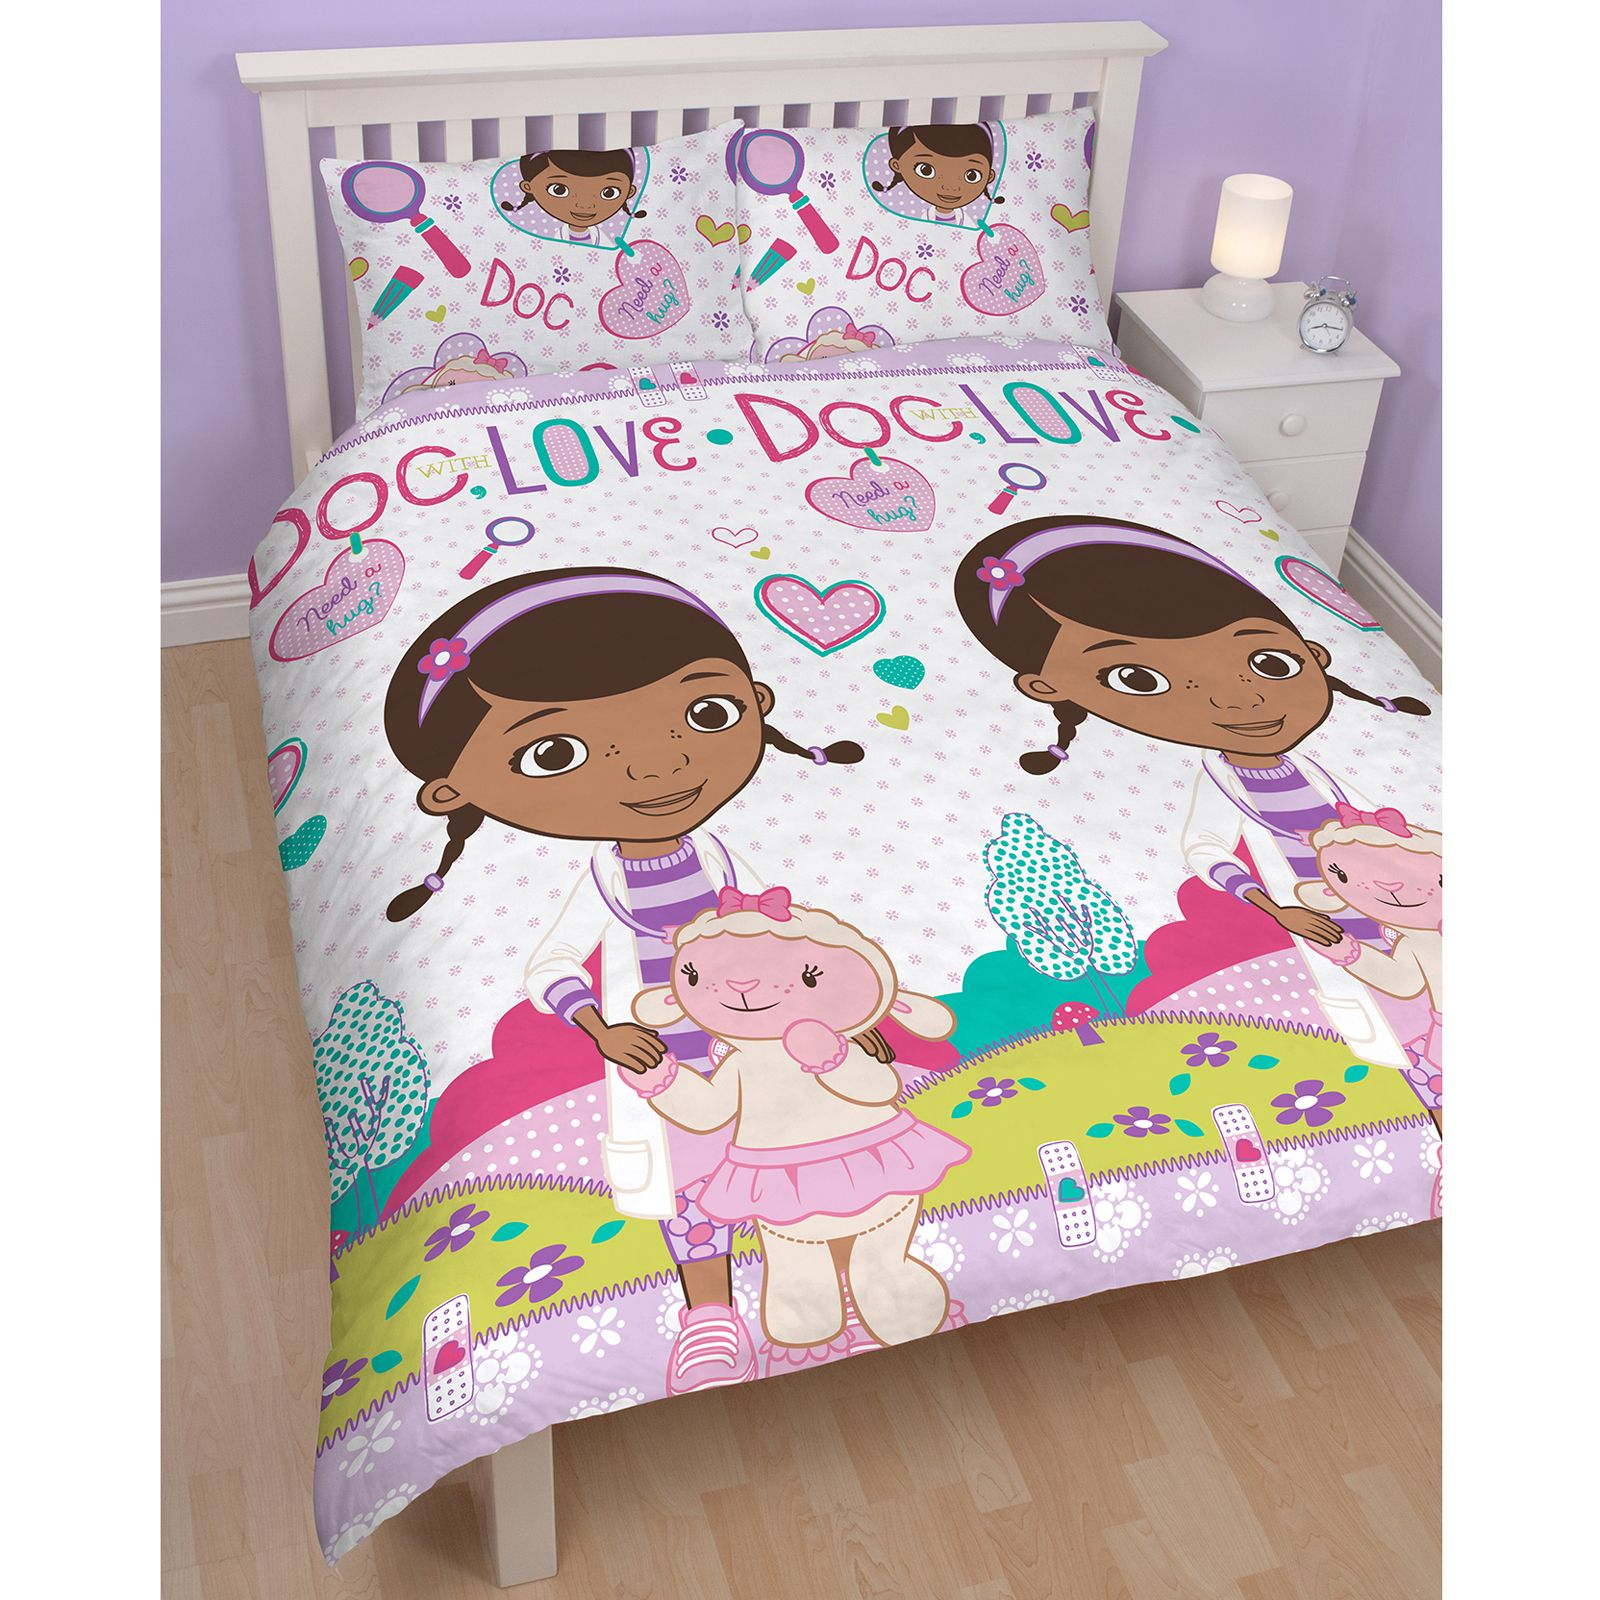 doc mcstuffins upholstered chair uk big man recliner chairs bedroom bedding duvet covers in single and